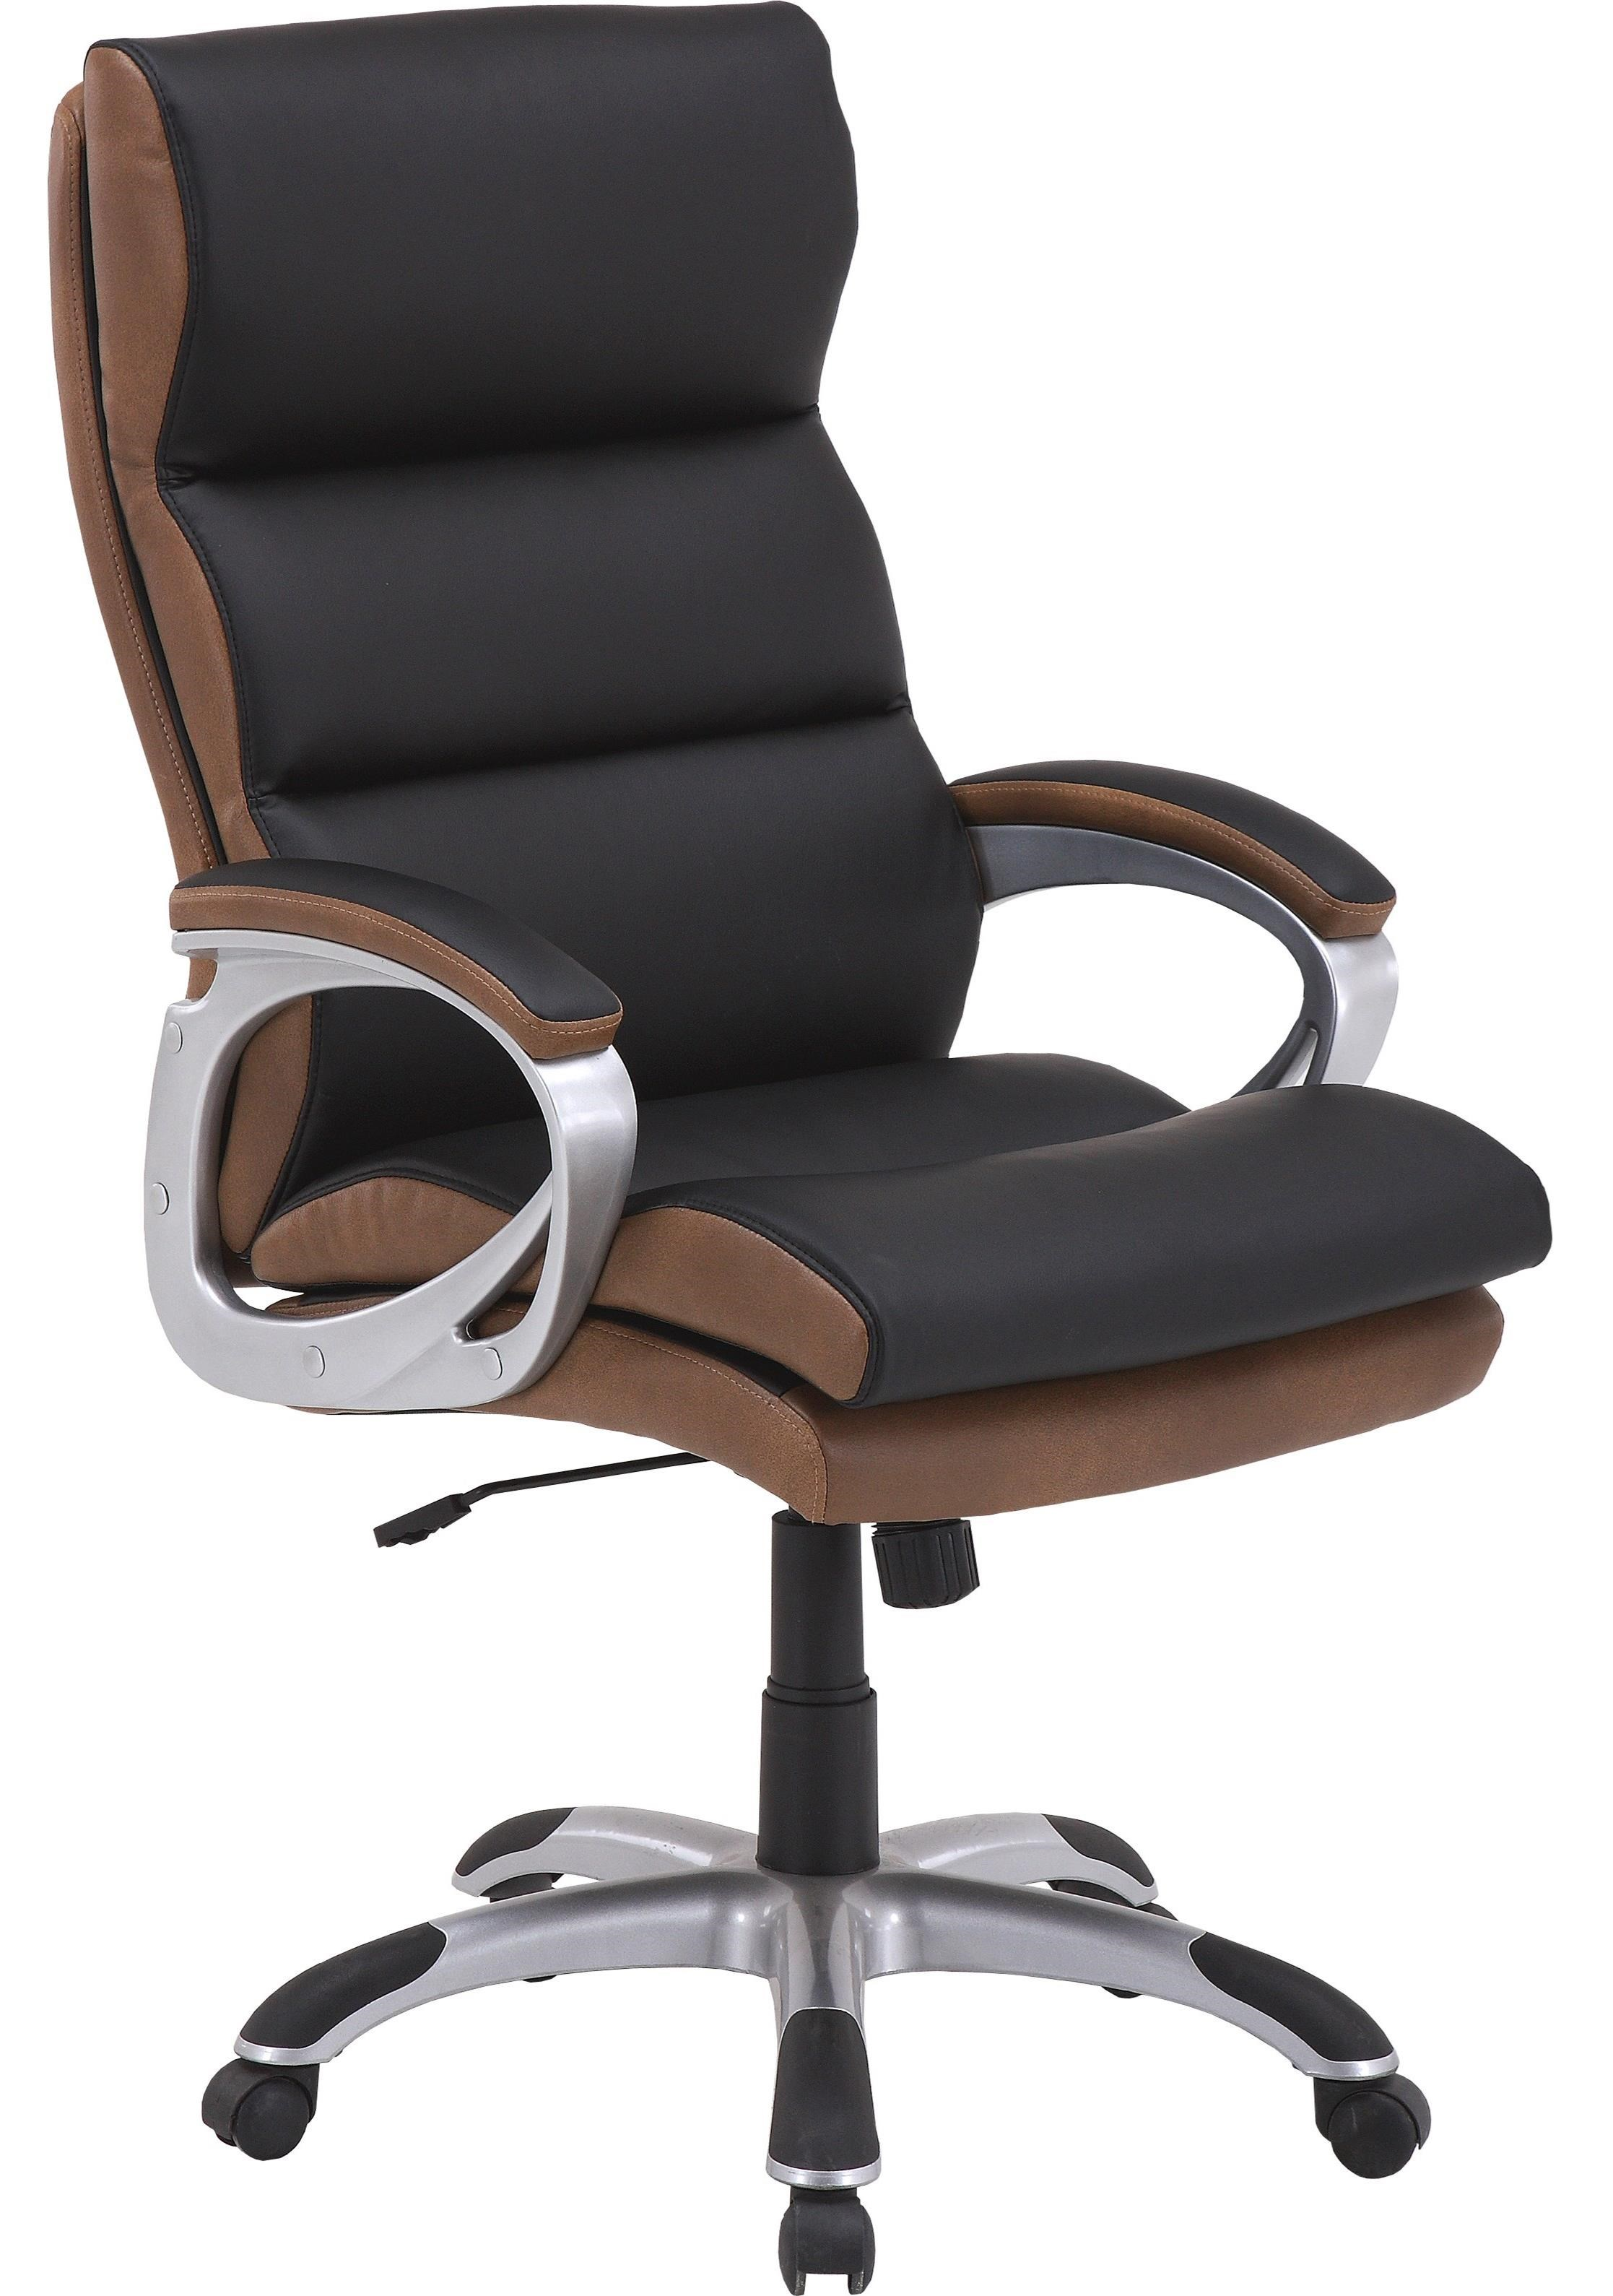 Parker Living Desk Chairs Desk Chair - Item Number: DC-203-DS